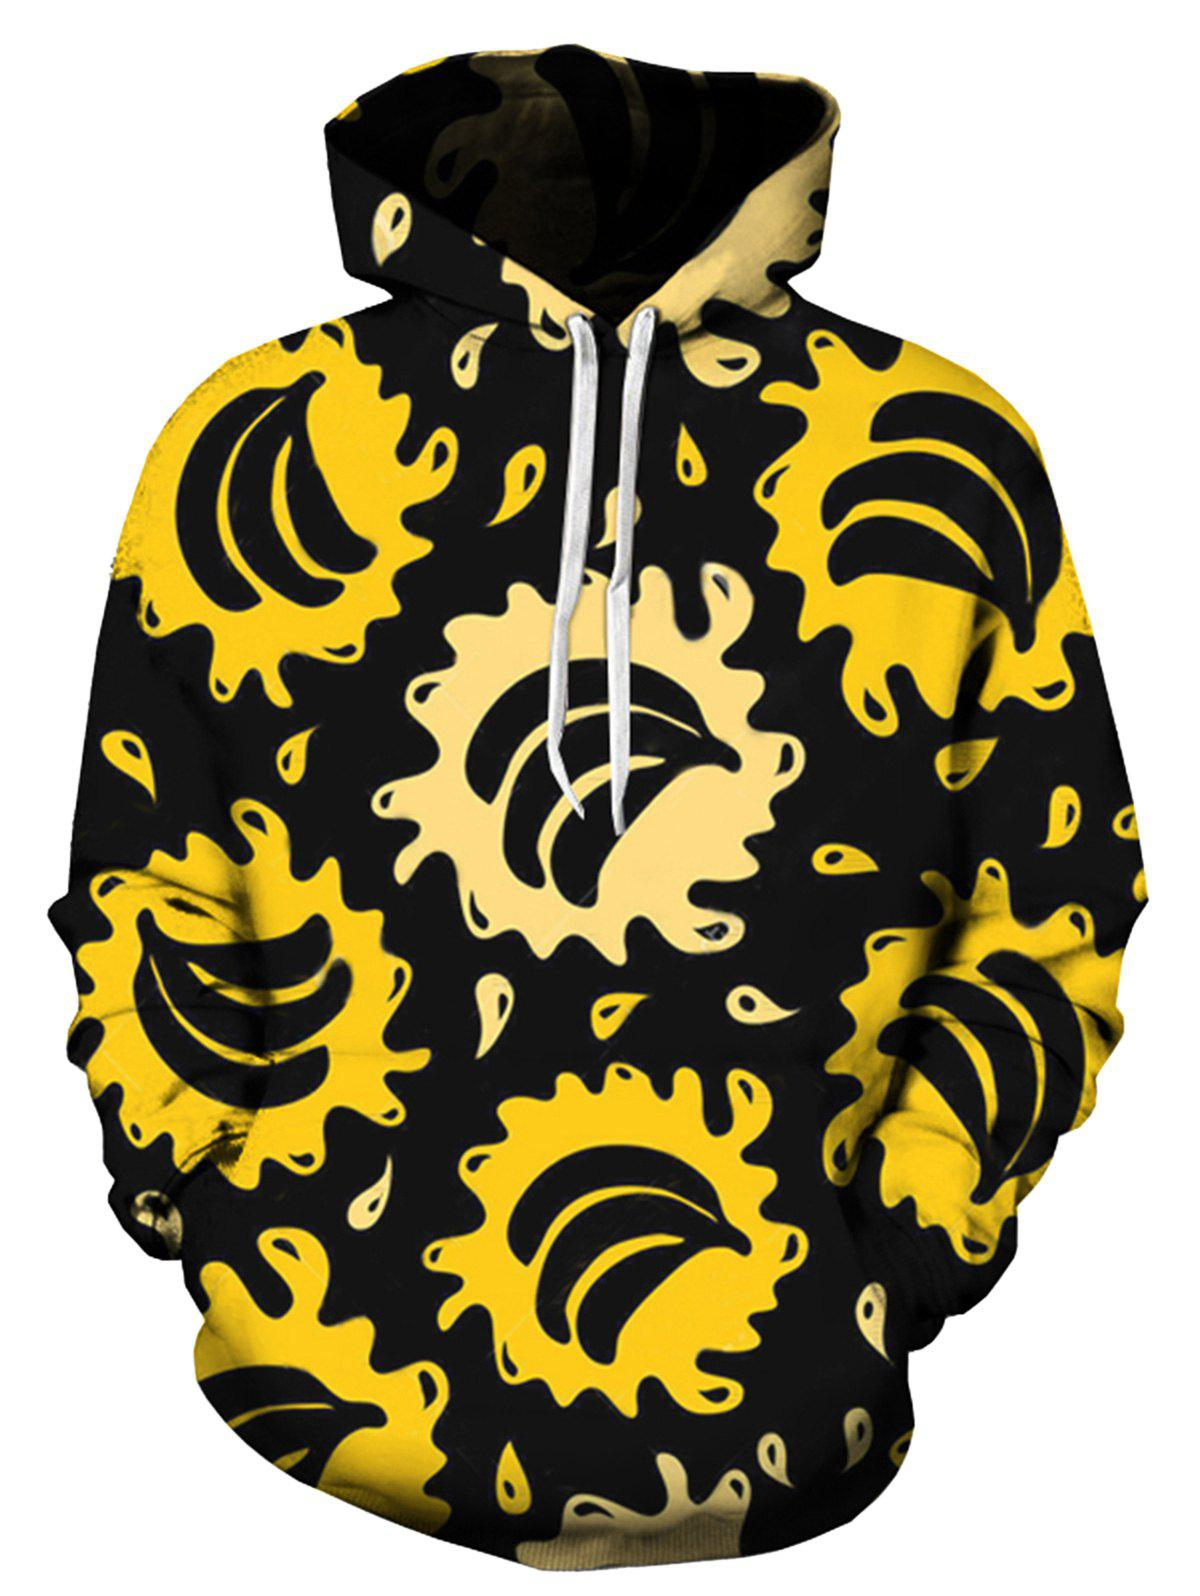 Latest Pocket Bananas Splatter Printed Hoodie